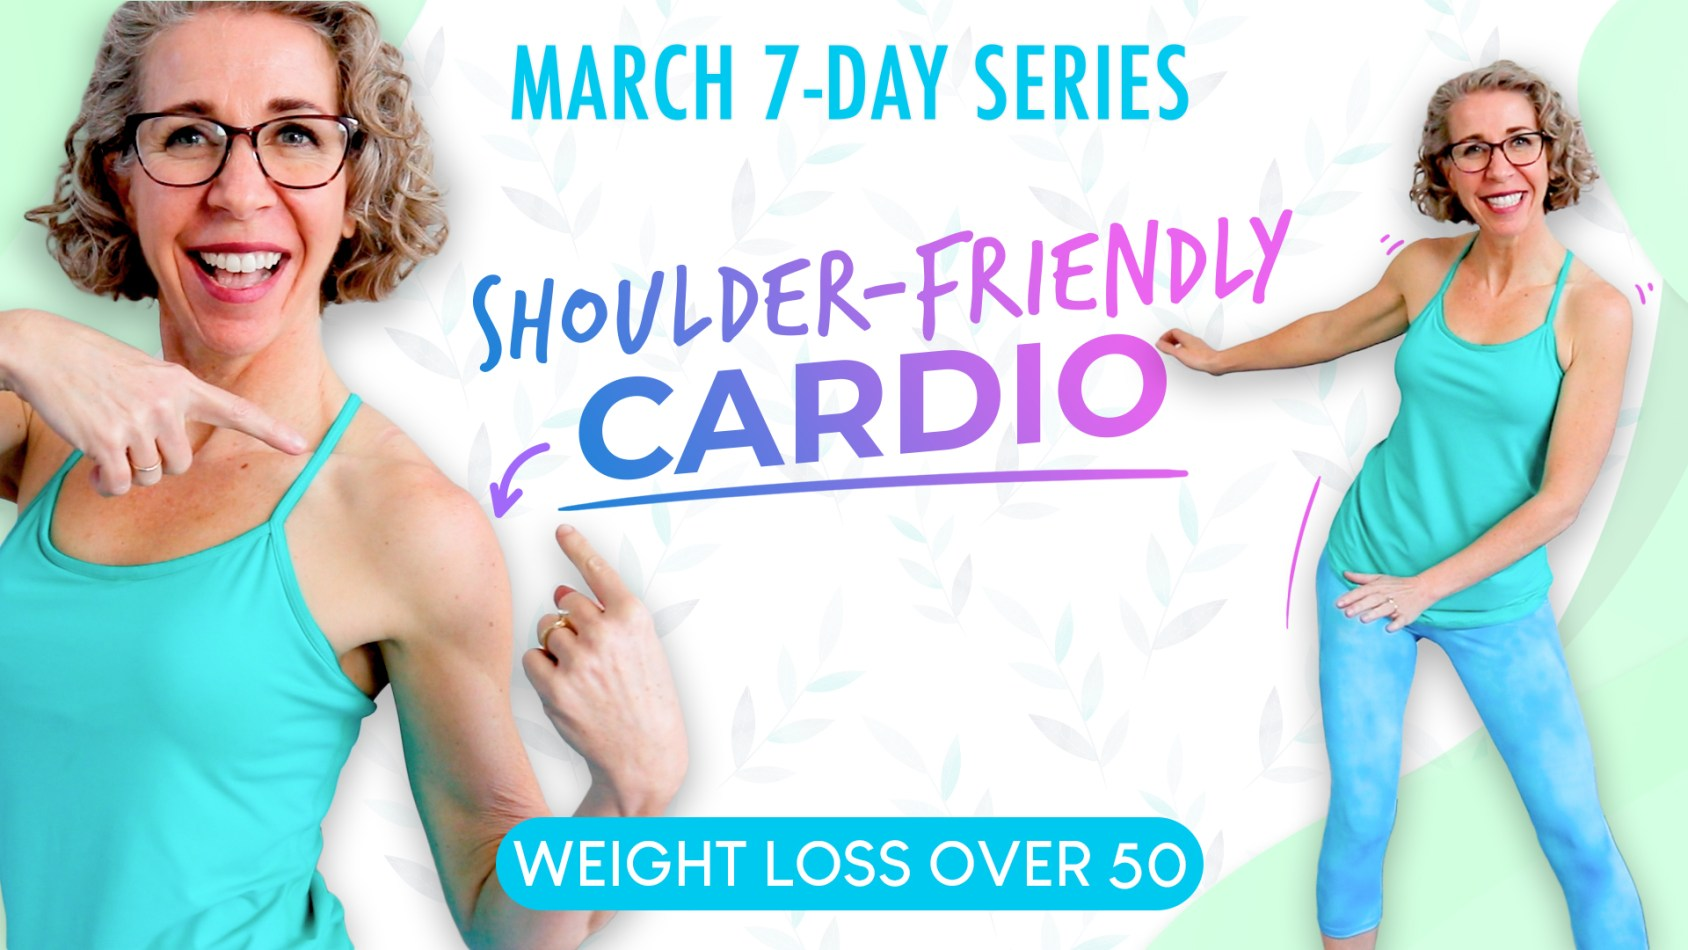 SHOULDER-FRIENDLY Cardio (NO Overhead Moves!) WEIGHT LOSS Workout ???? Pahla B Fitness